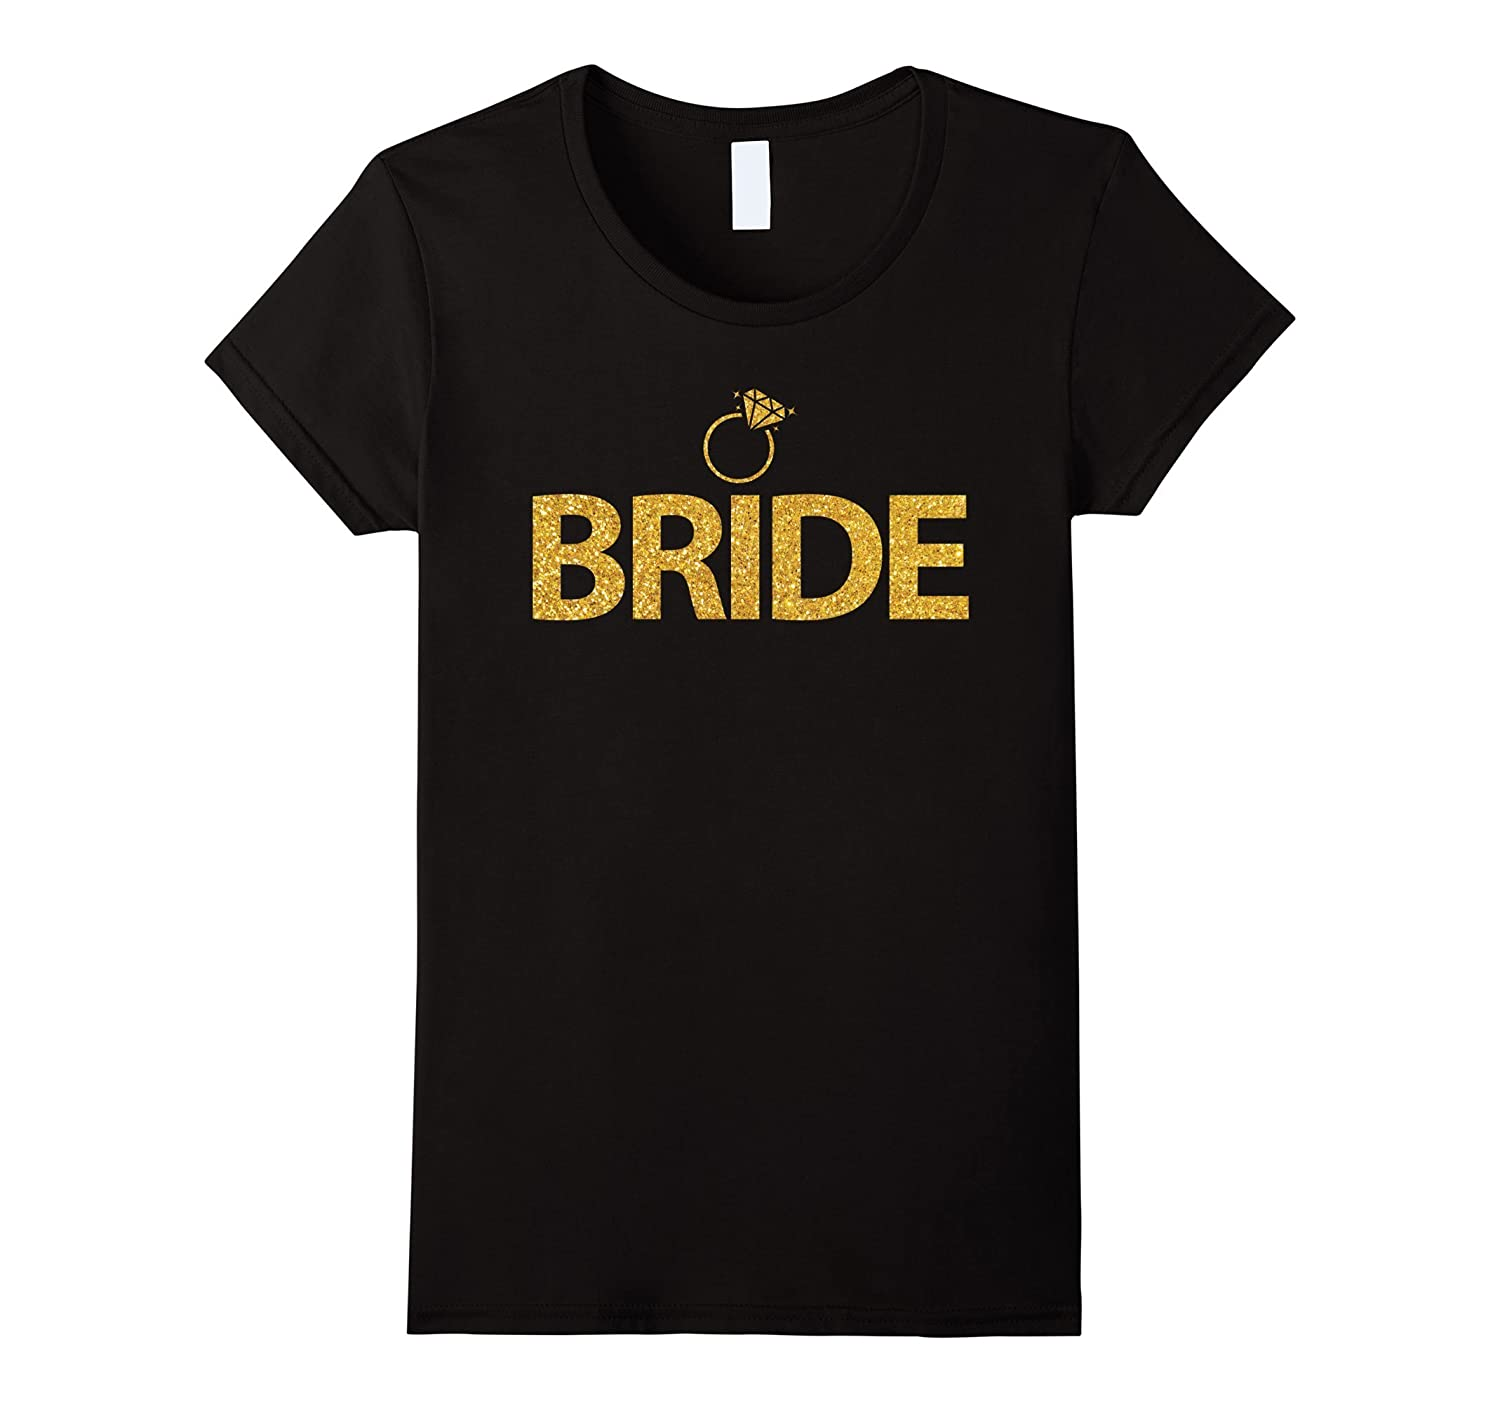 Women's Bride Shirts With Gold Ring - Bachelorette Party Shirts-CL